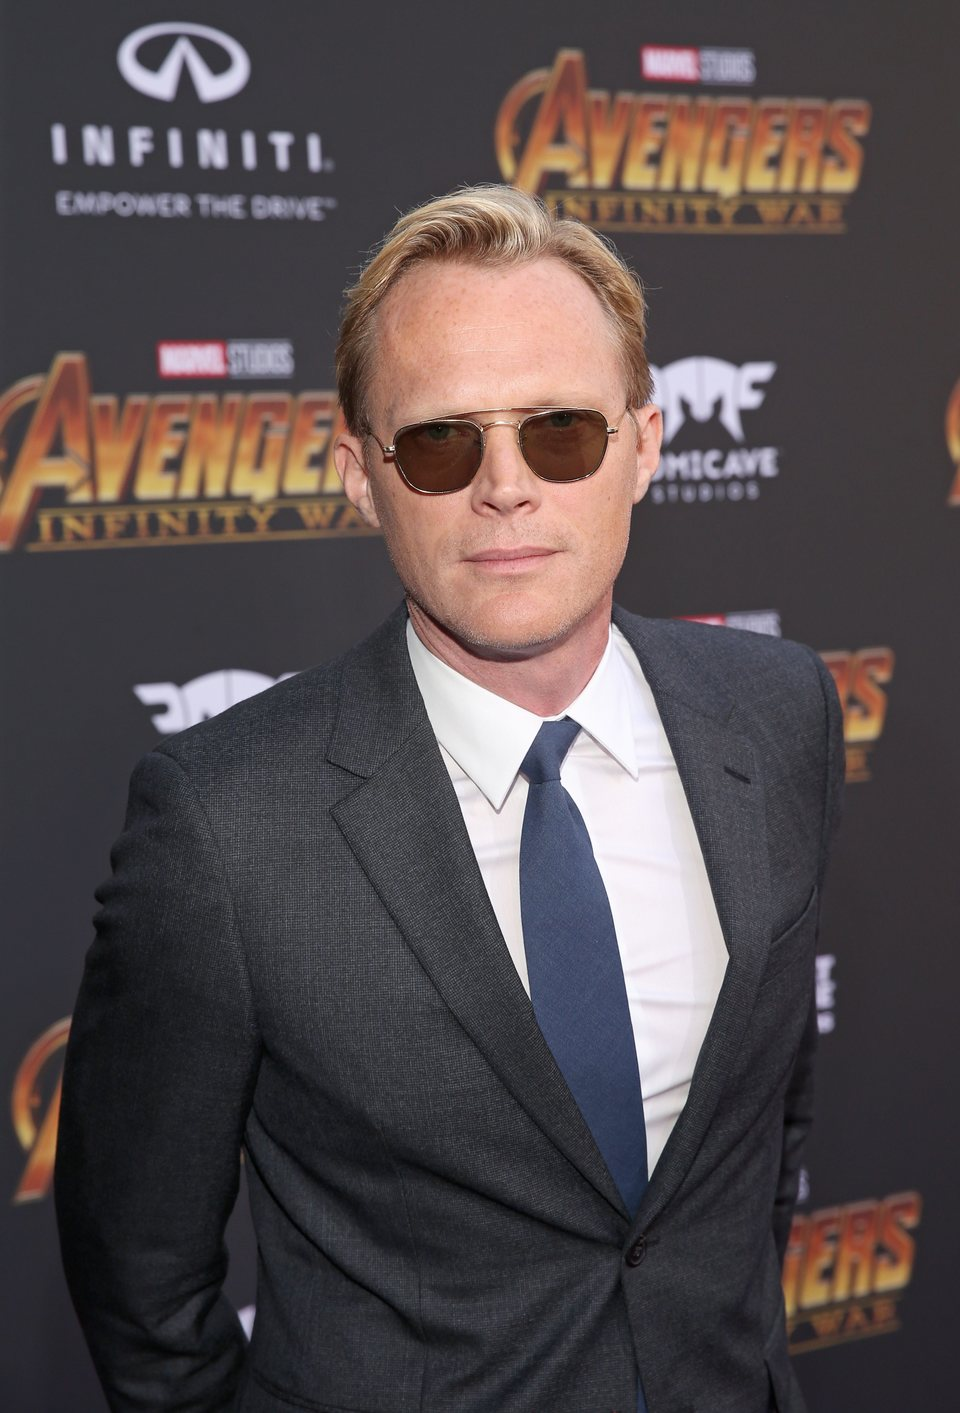 Paul Bettany poses on the purple carpet at the world premiere of 'Avengers: Infinity War'